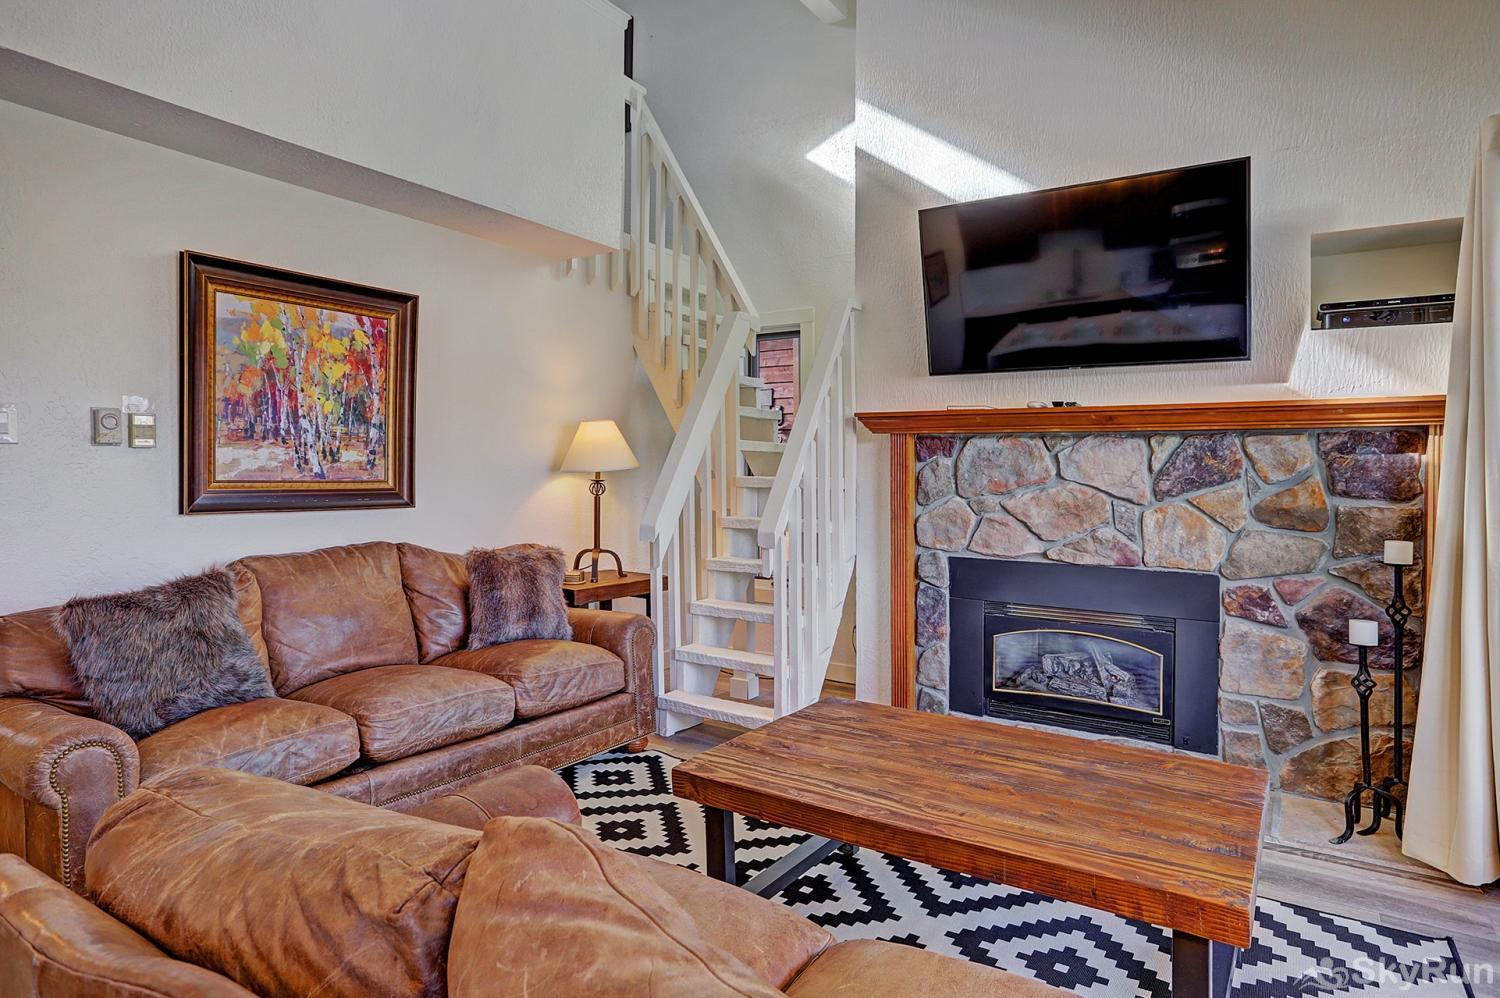 Lances West 13 Stay cozy warm by the gas fireplace on those cold winter nights